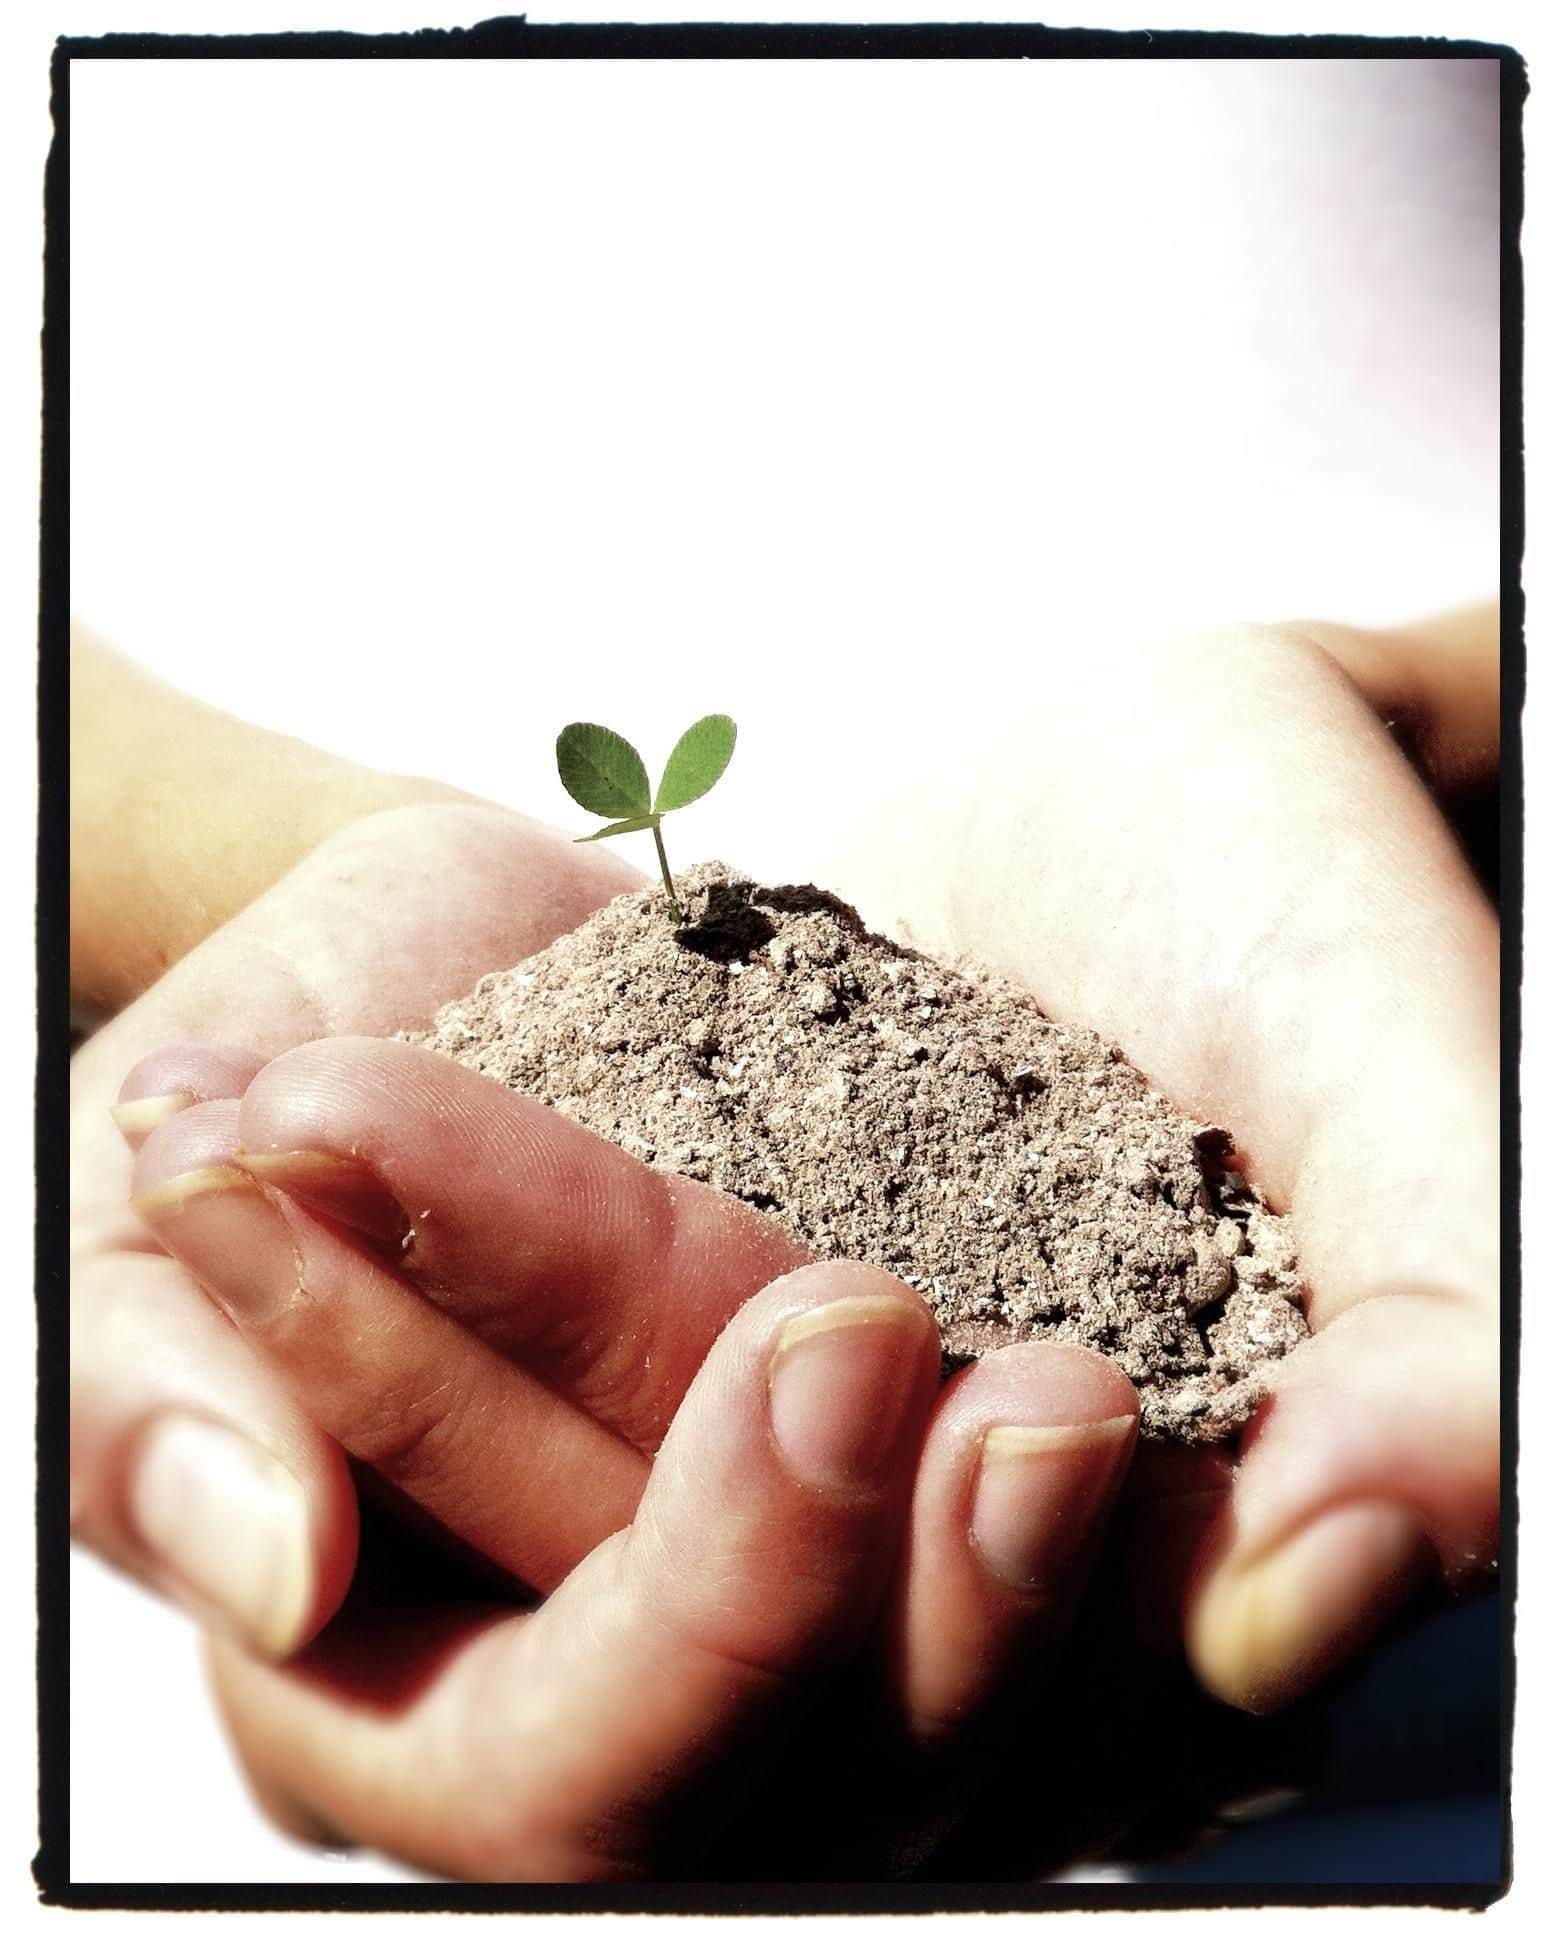 ashes dream meaning, dream about ashes, ashes dream interpretation, seeing in a dream ashes